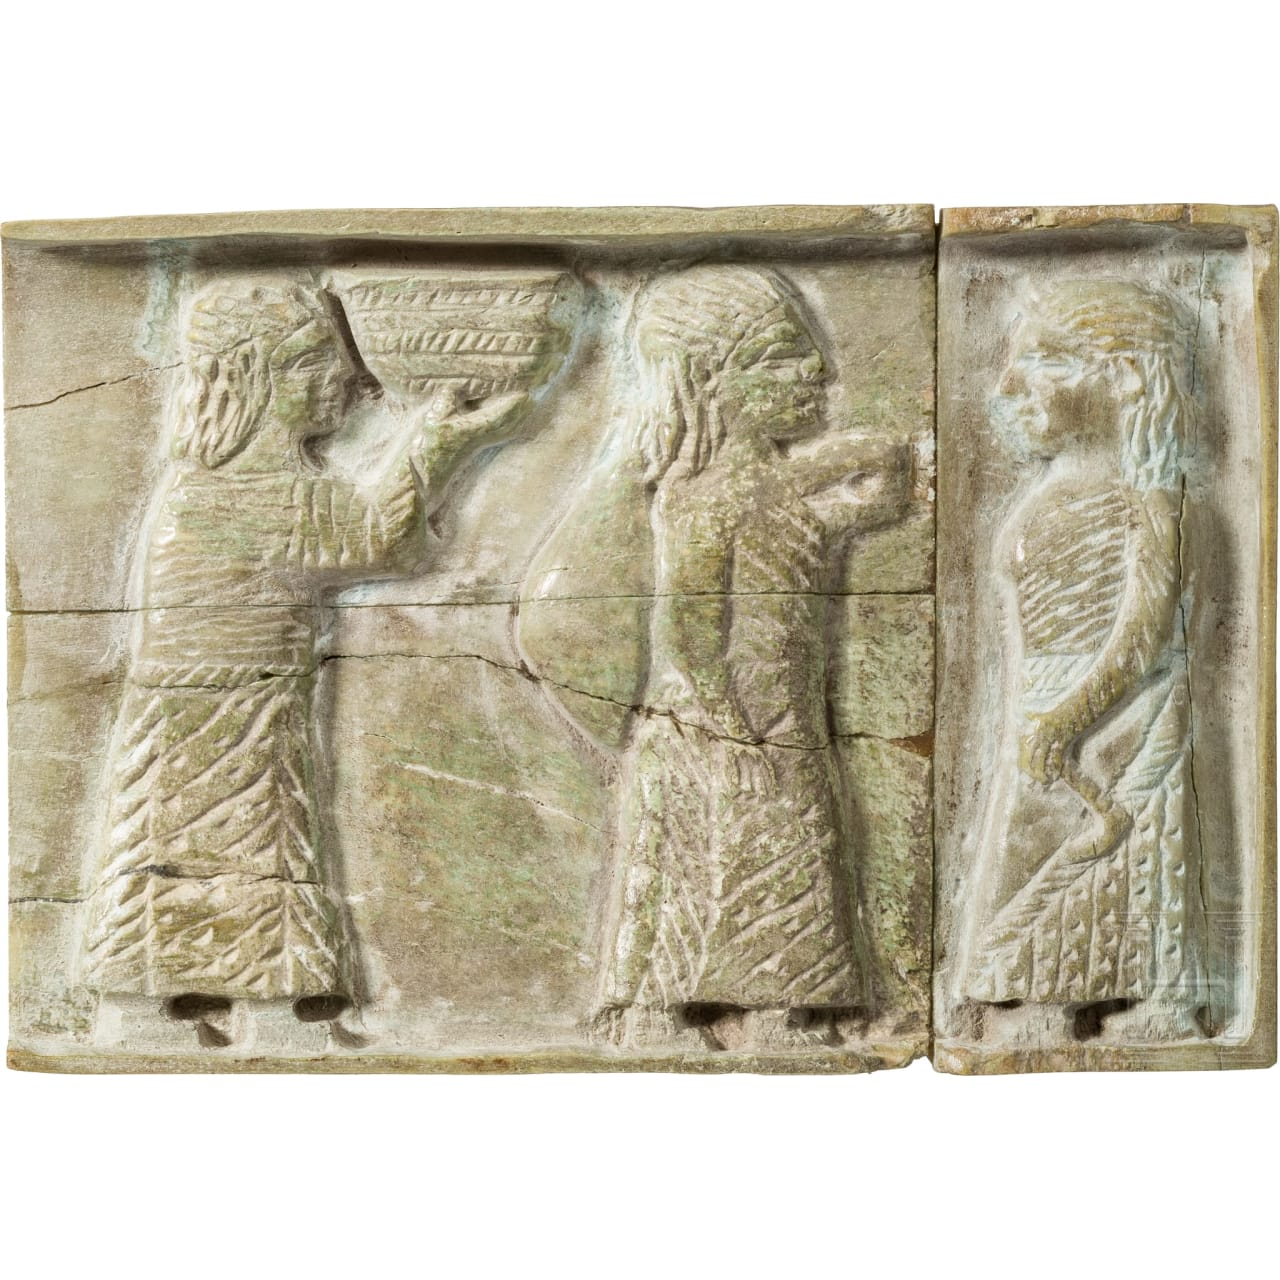 A western Asian relief plaque made of bone, 1st half of the 1st millenium B.C.